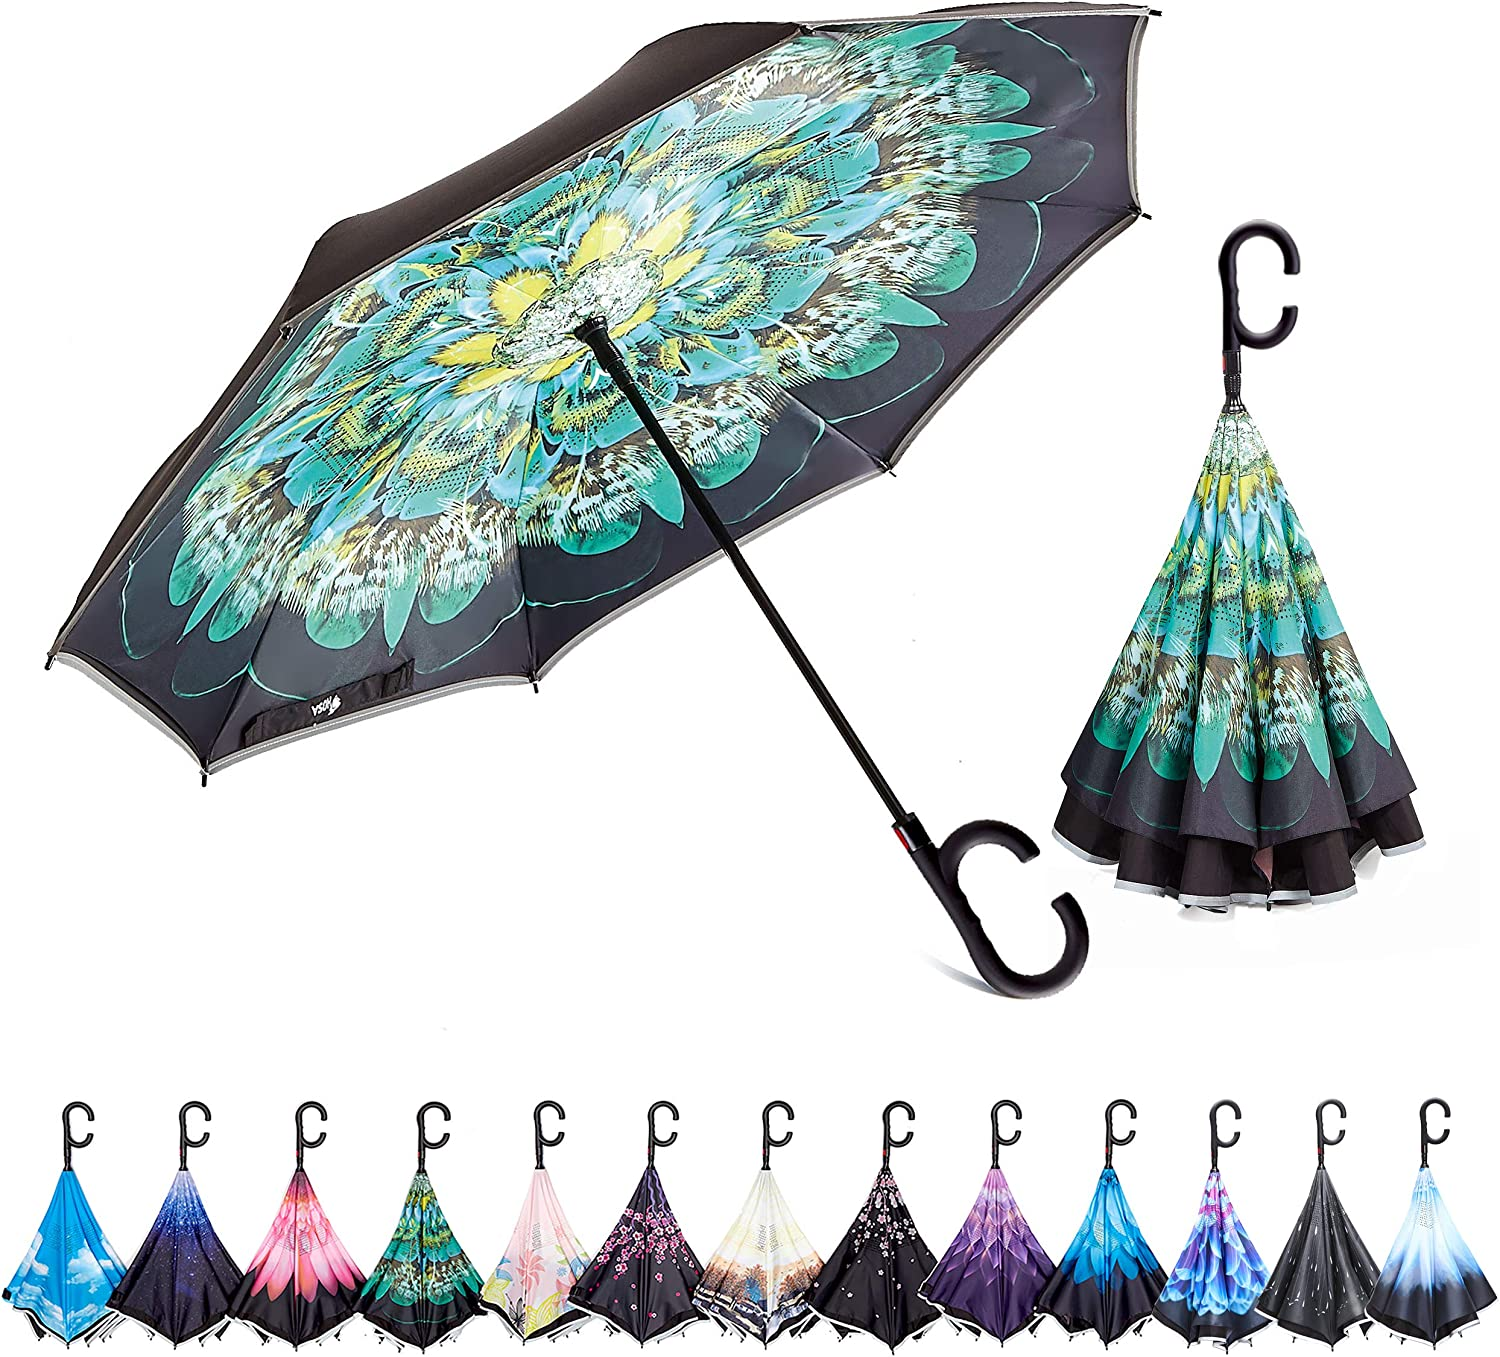 HOSA Reverse Inverted Outstanding Umbrella Night U Strips Reflective Max 45% OFF Safety